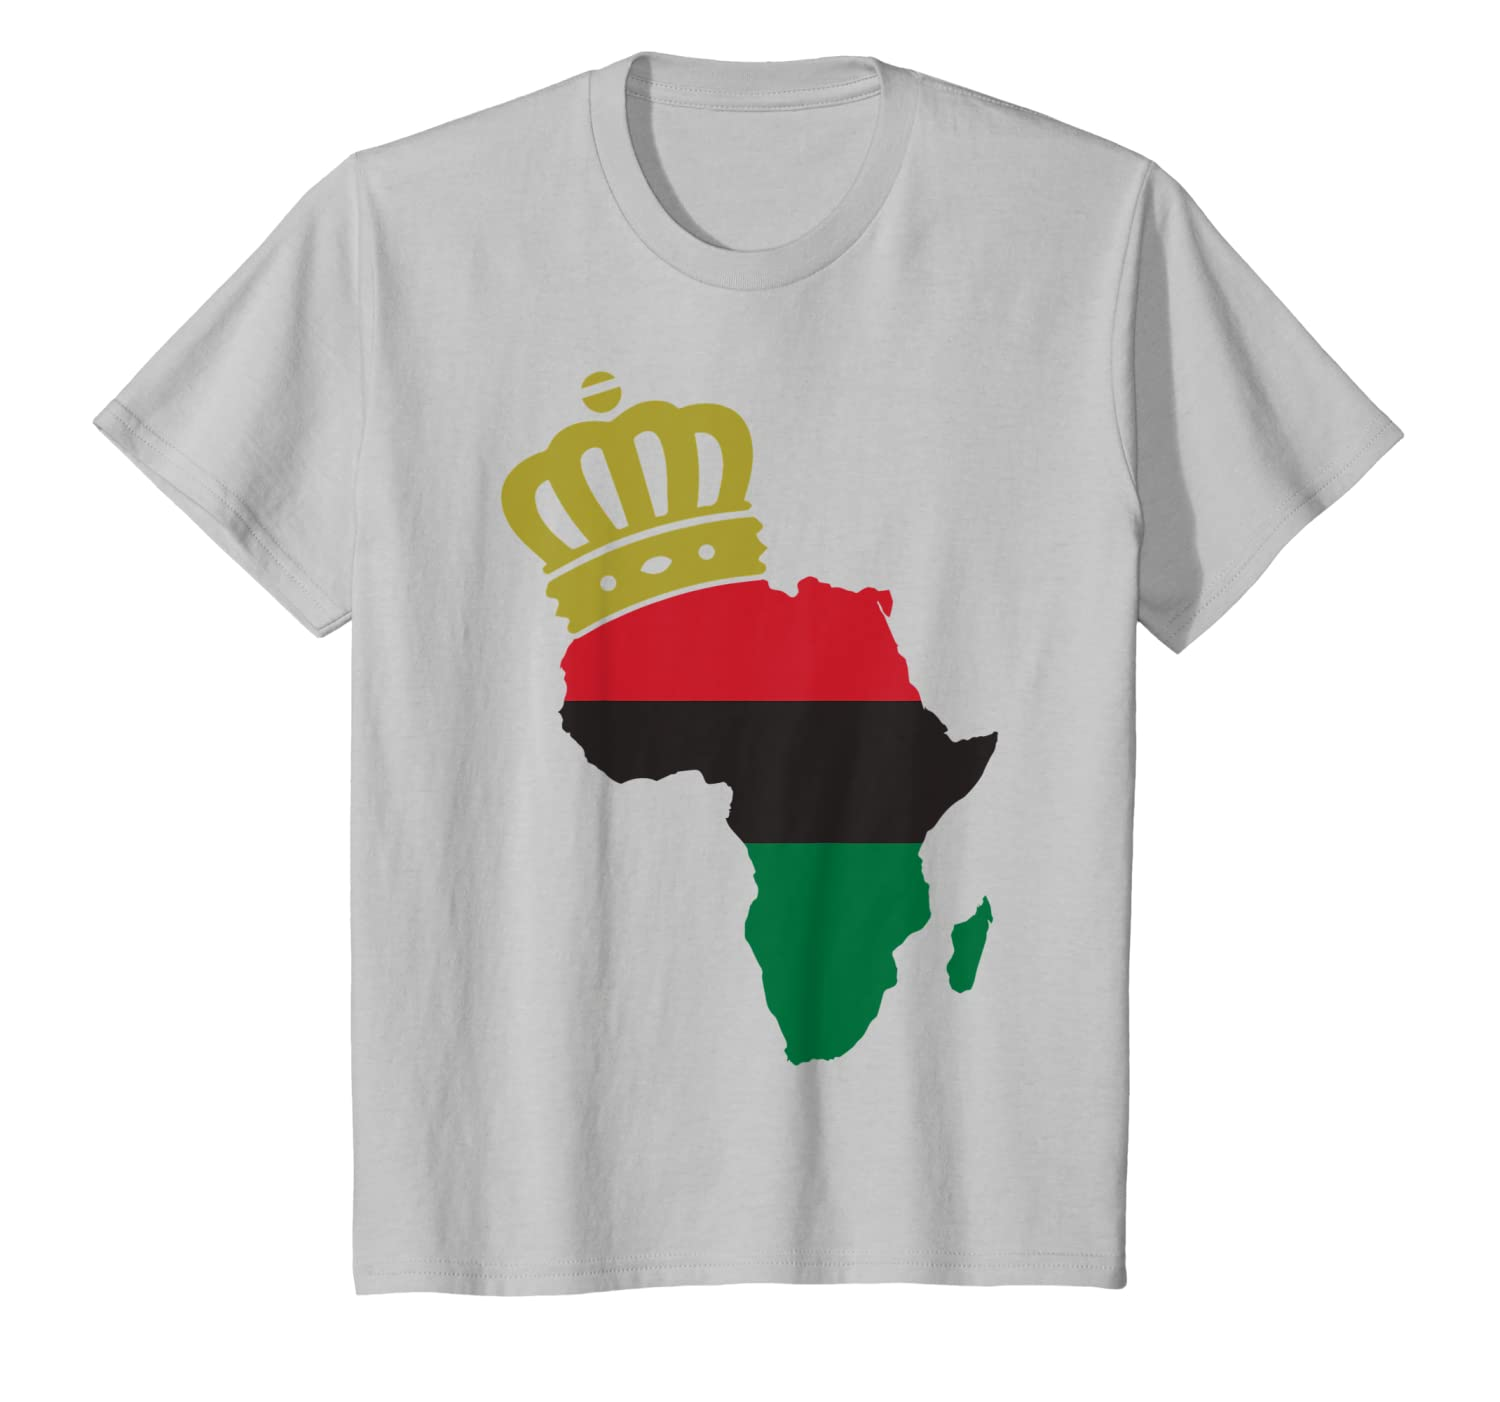 a879eb75f Amazon.com: African American Pride: T-shirts for Men, Women, and Kids:  Clothing